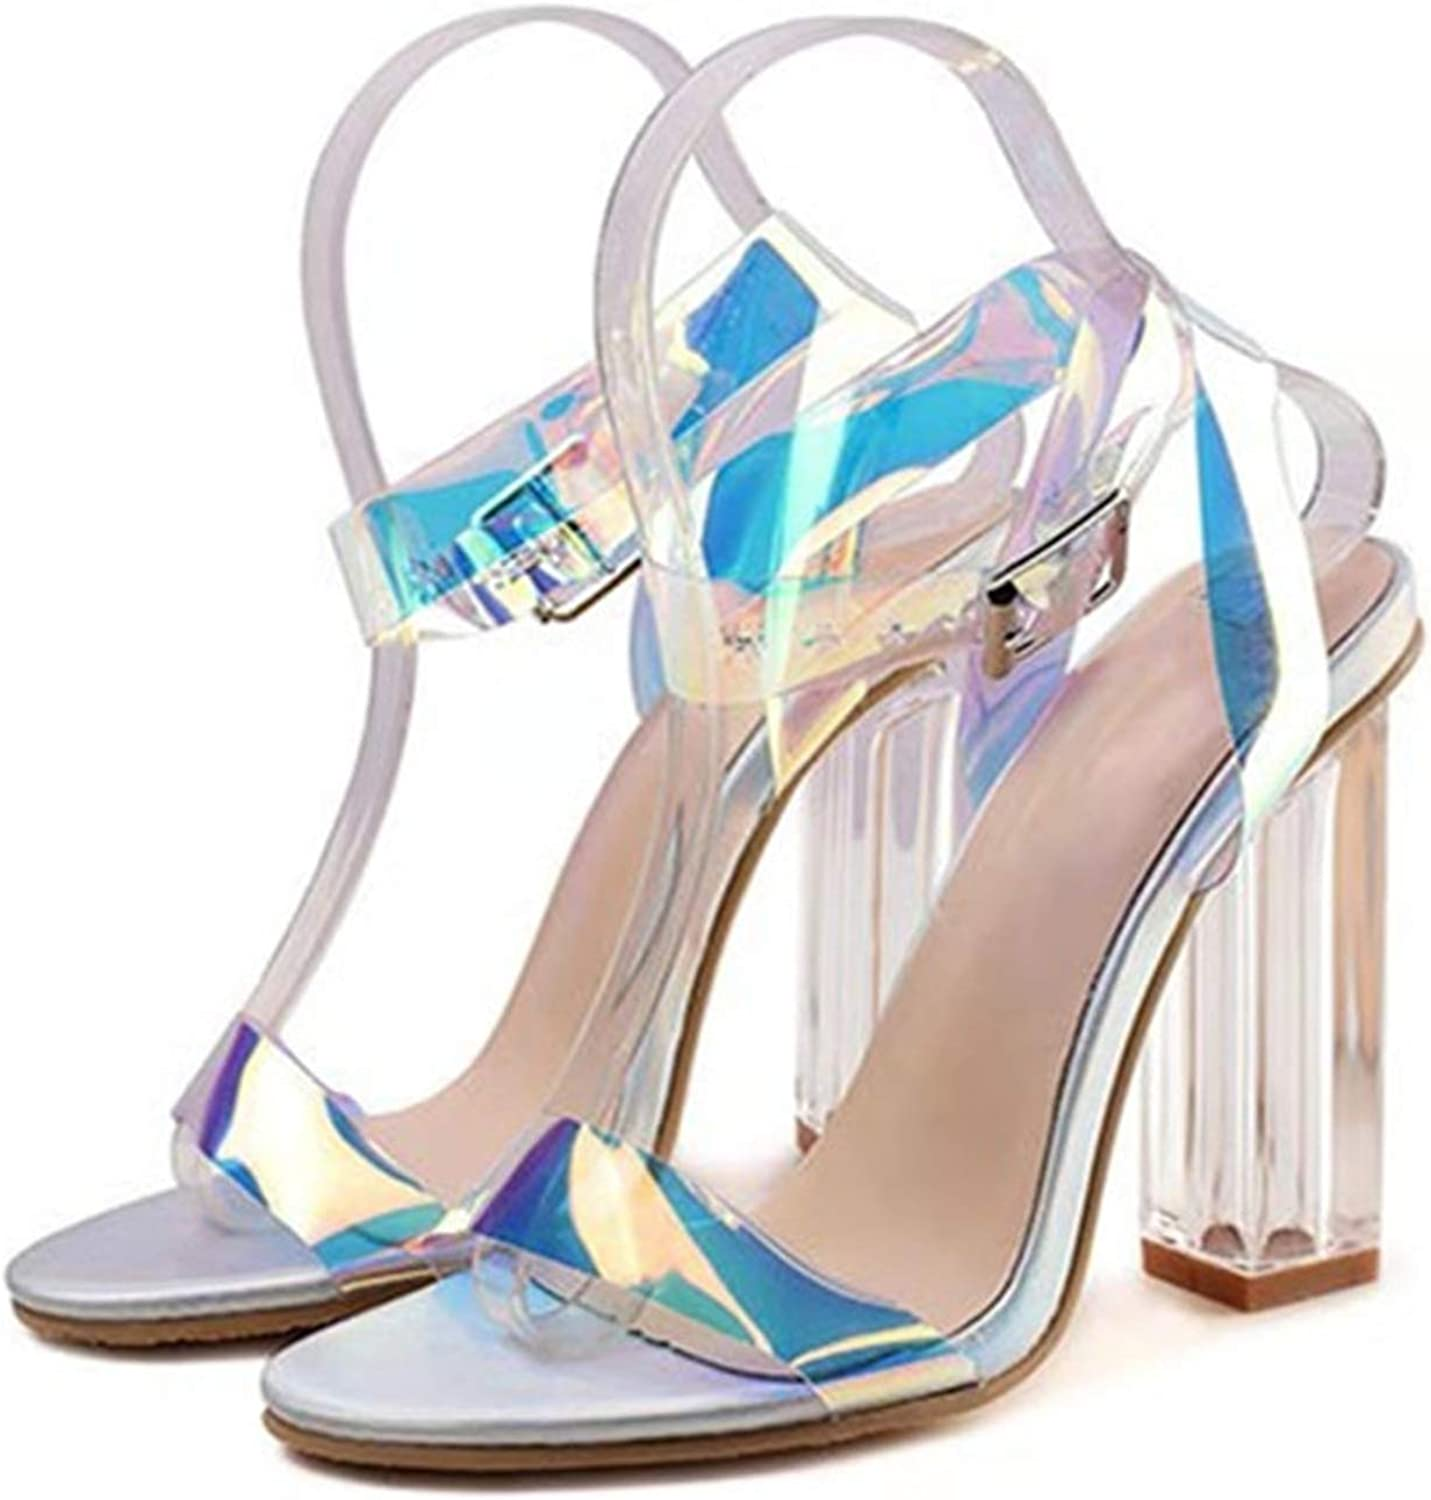 Elegant Women Sandals Thick High Heels Female Gladiator Sandals Summer Crystal Heeled Party shoes